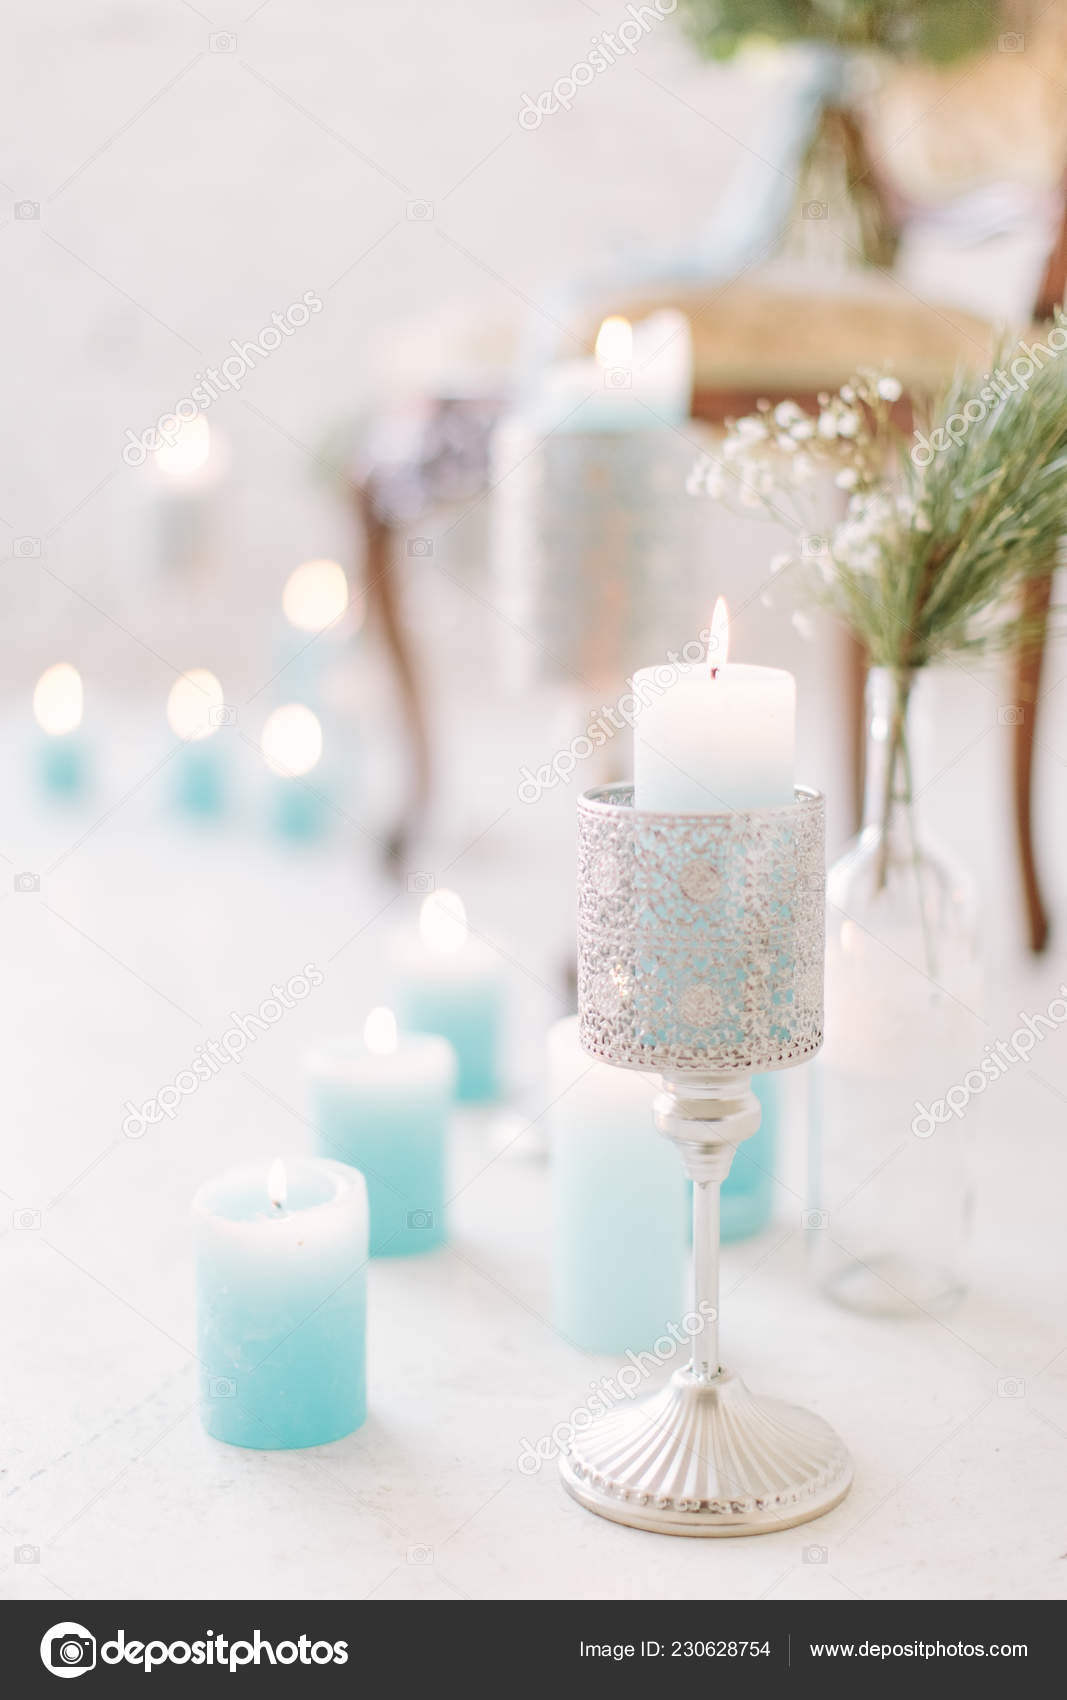 Teal Black And Silver Wedding Decorations  from st4.depositphotos.com